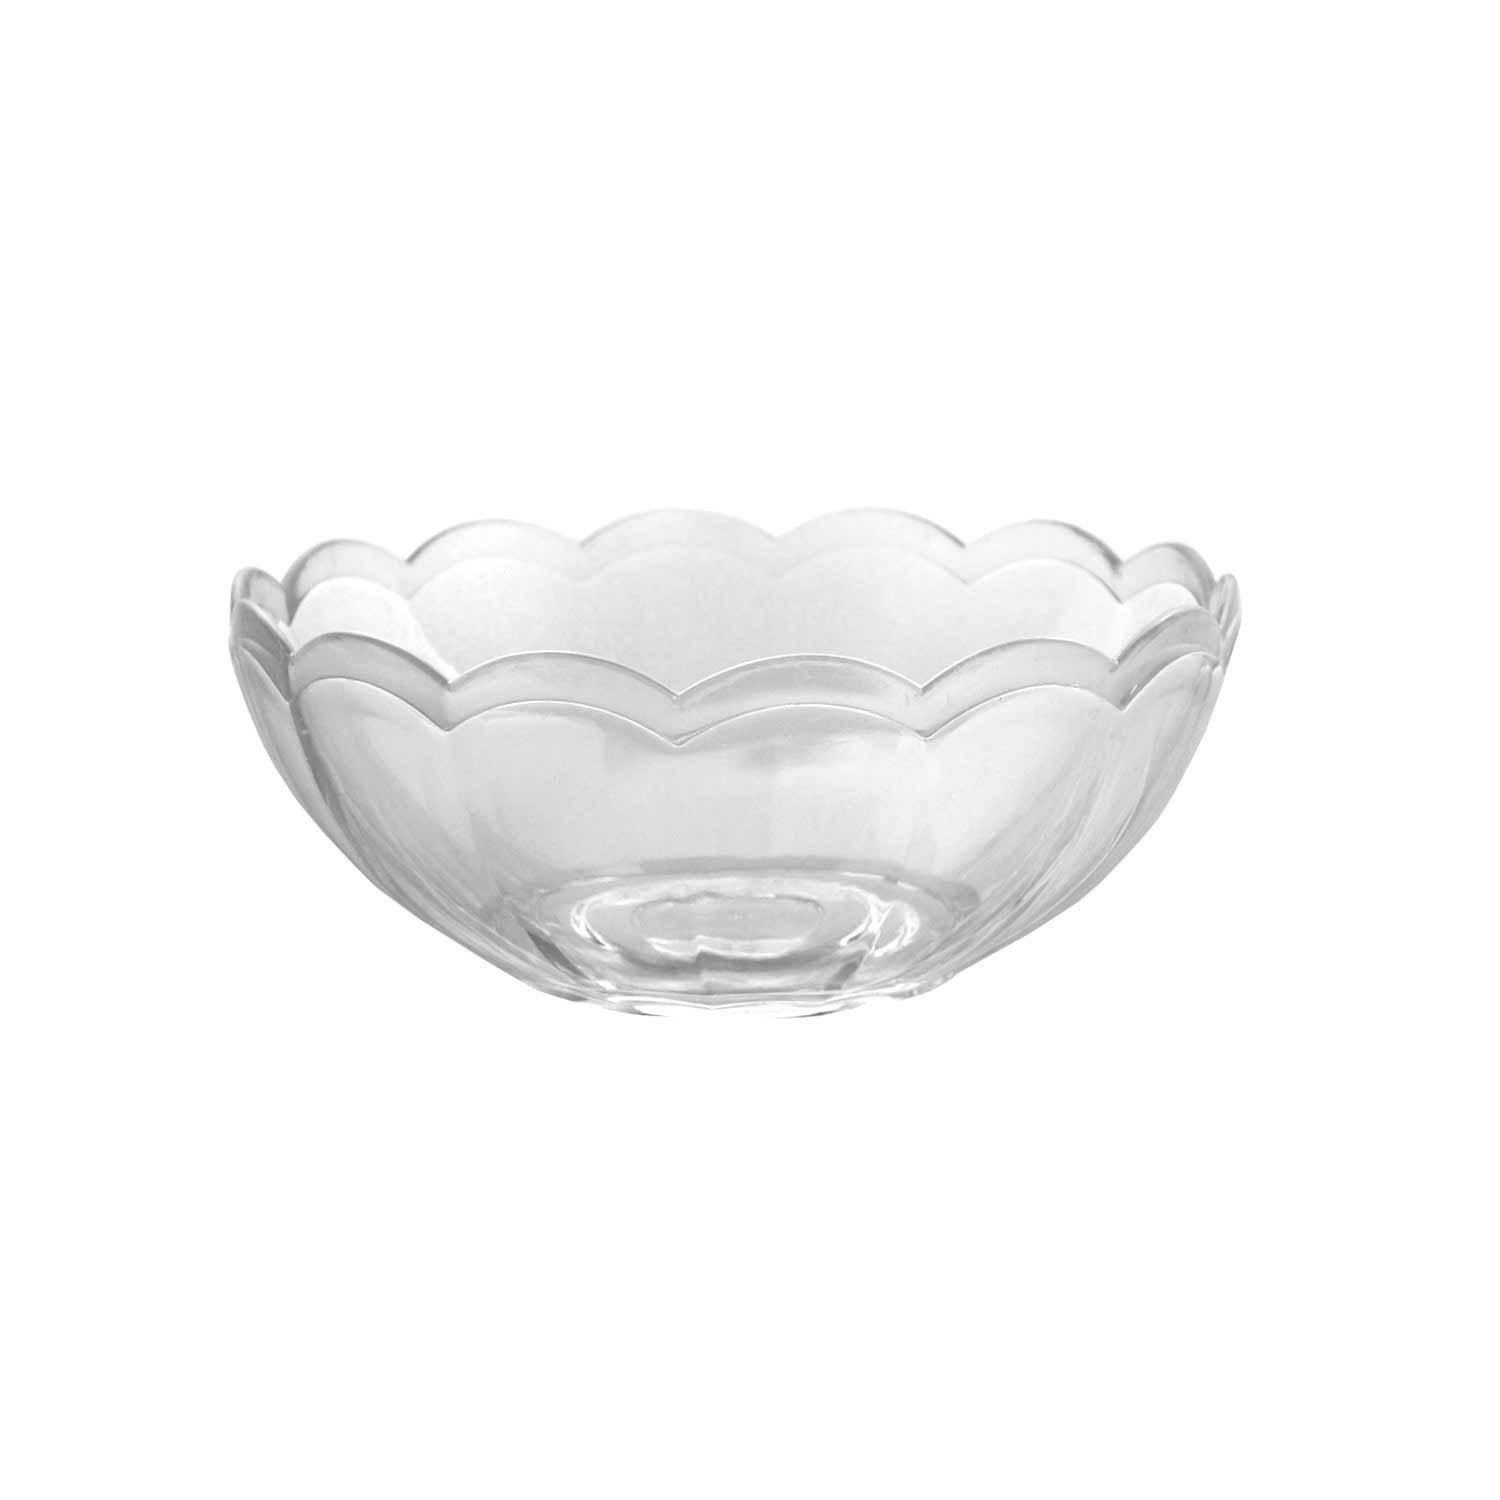 Party Essentials N084821 Plastic Snack Bowl, 8-Ounce Capacity, Clear (Case of 48)